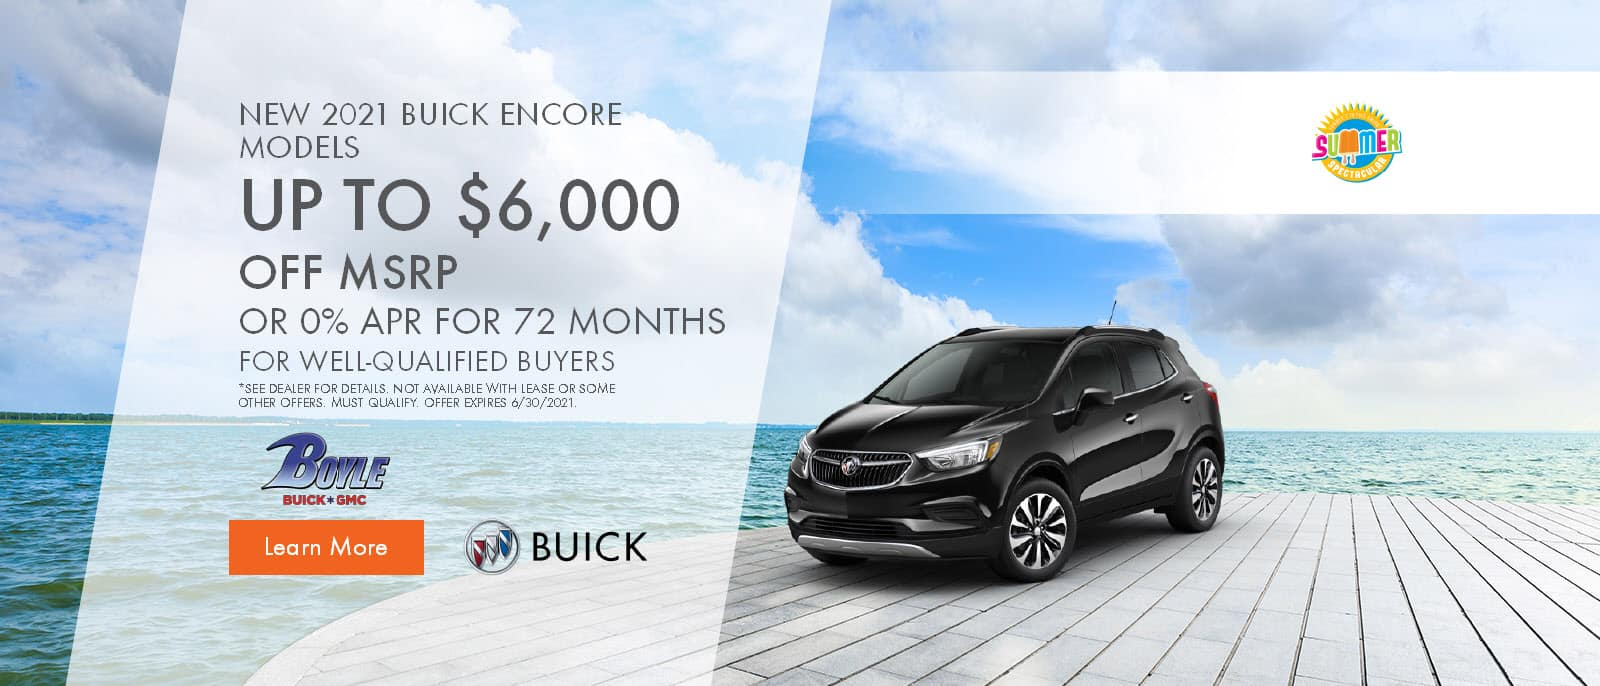 Up to $6,000 Off MSRP